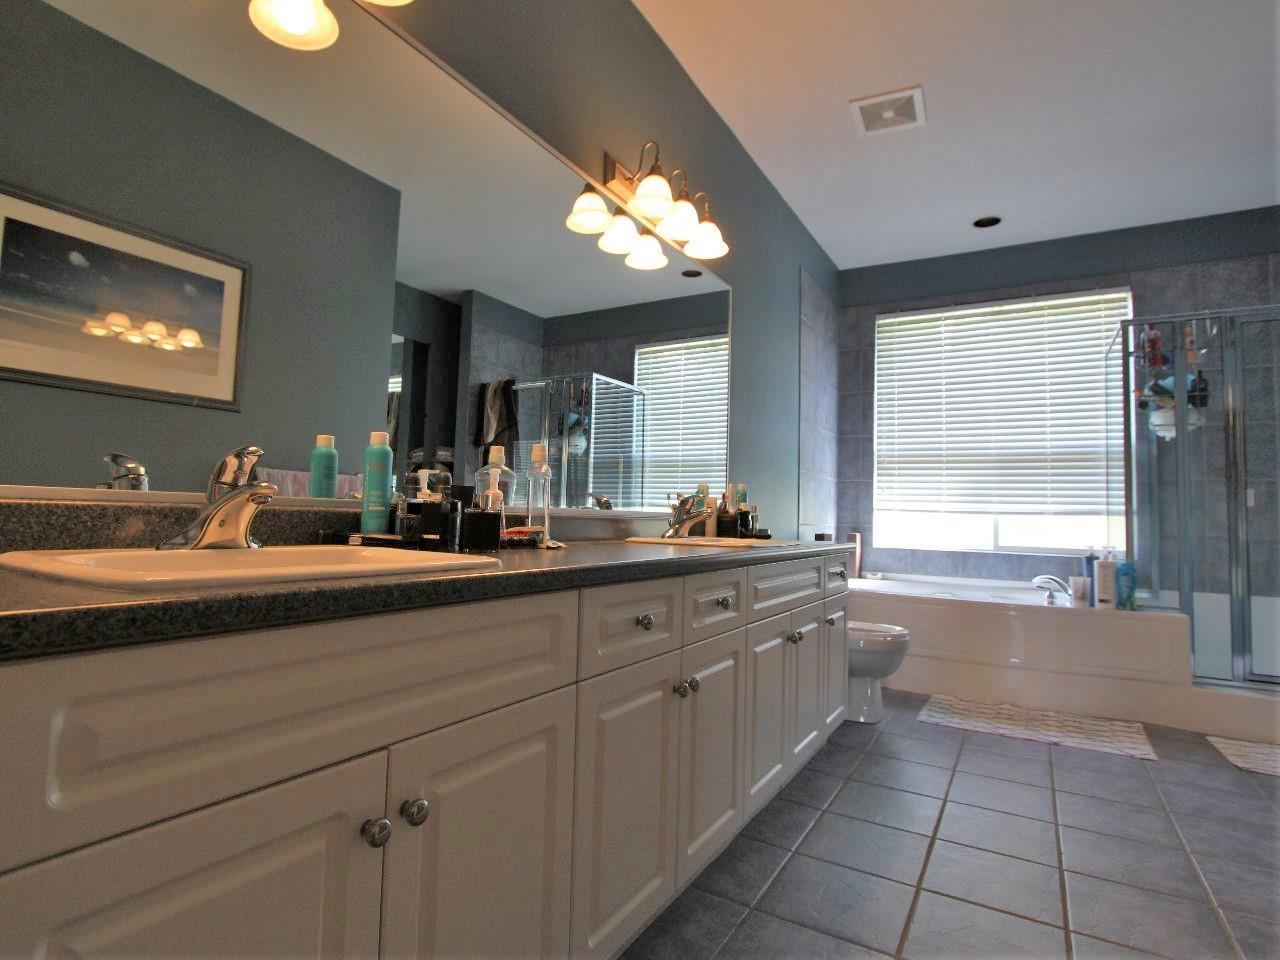 Photo 16: 30456 HERITAGE Drive in Abbotsford: Abbotsford West House for sale : MLS® # R2066678